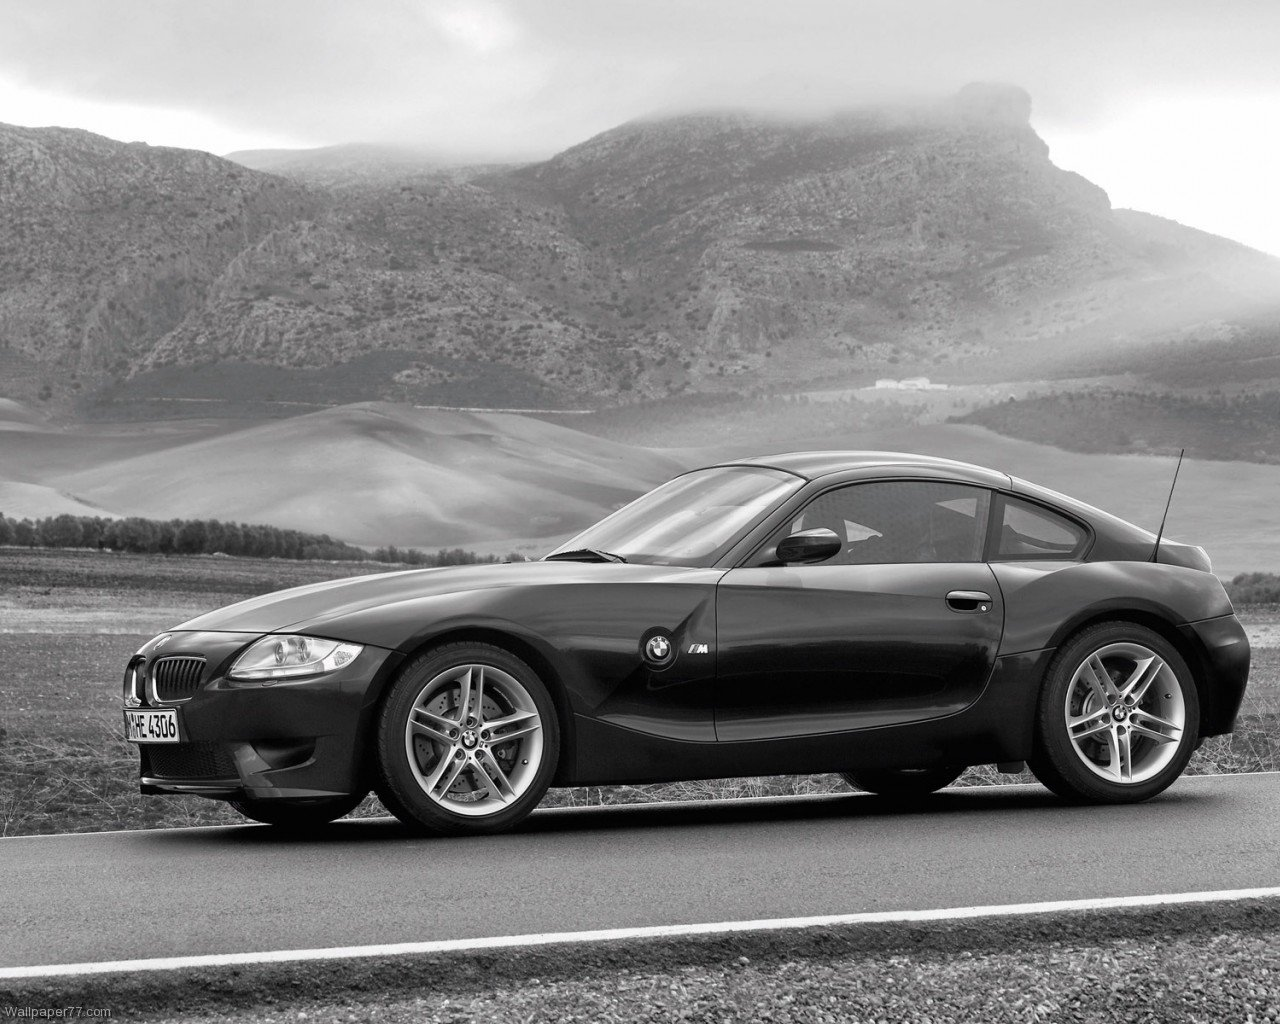 Latest Cars Wallpapers12 Bmw Black Cars Hd Wallpapers Free Download